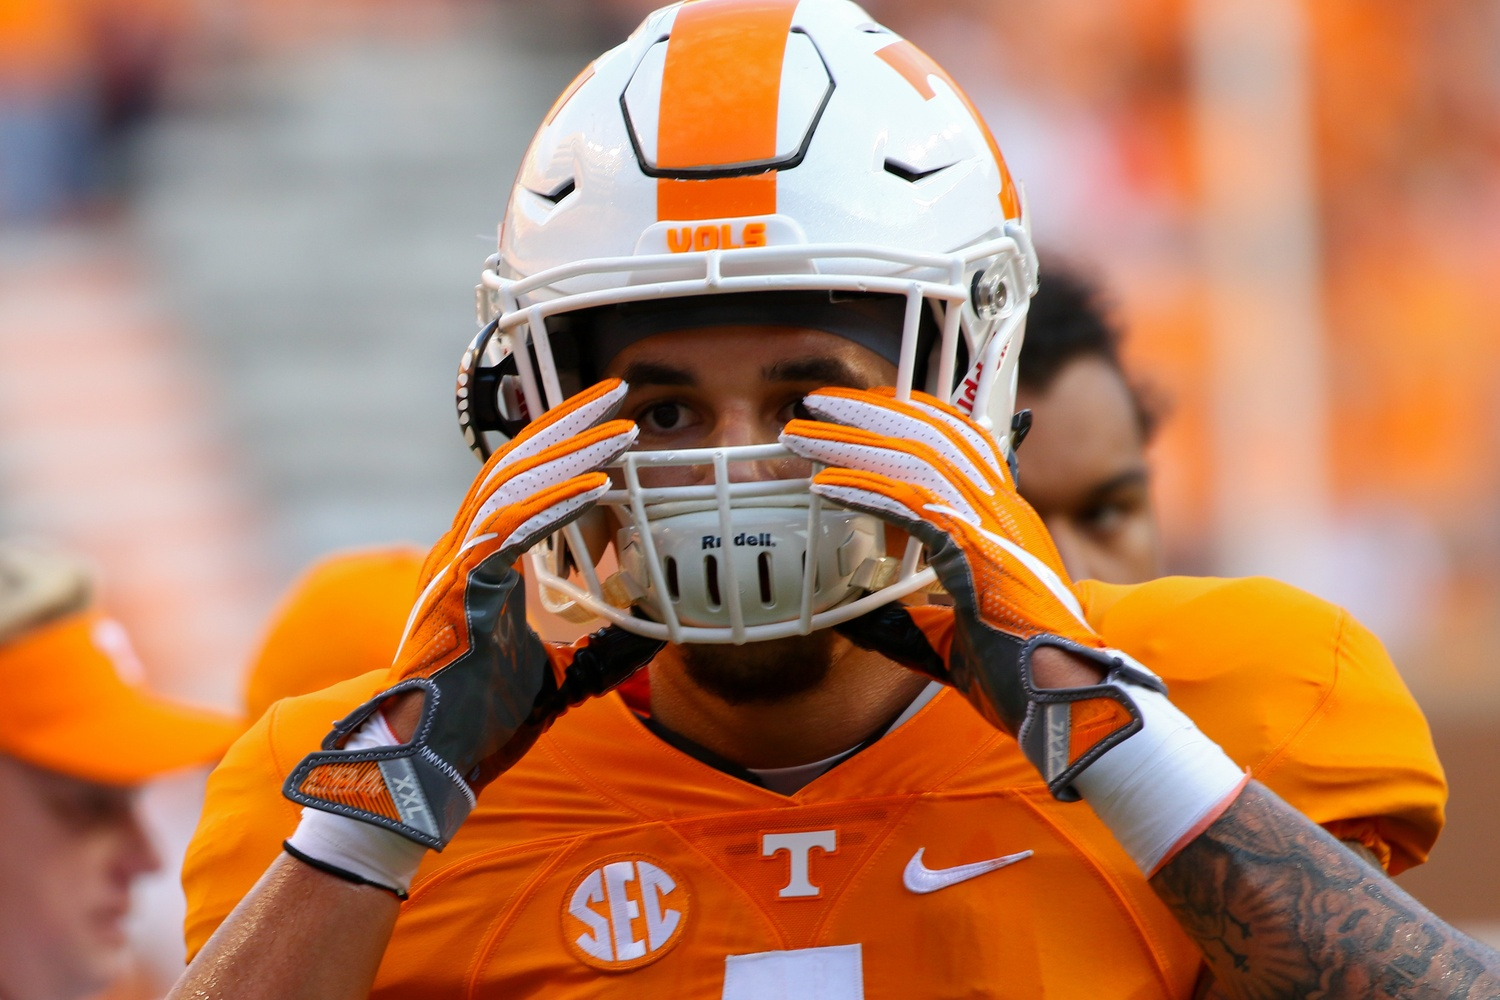 Sep 1, 2016; Knoxville, TN, USA; Tennessee Volunteers running back Jalen Hurd (1) before the game against the Appalachian State Mountaineers at Neyland Stadium. Mandatory Credit: Randy Sartin-USA TODAY Sports